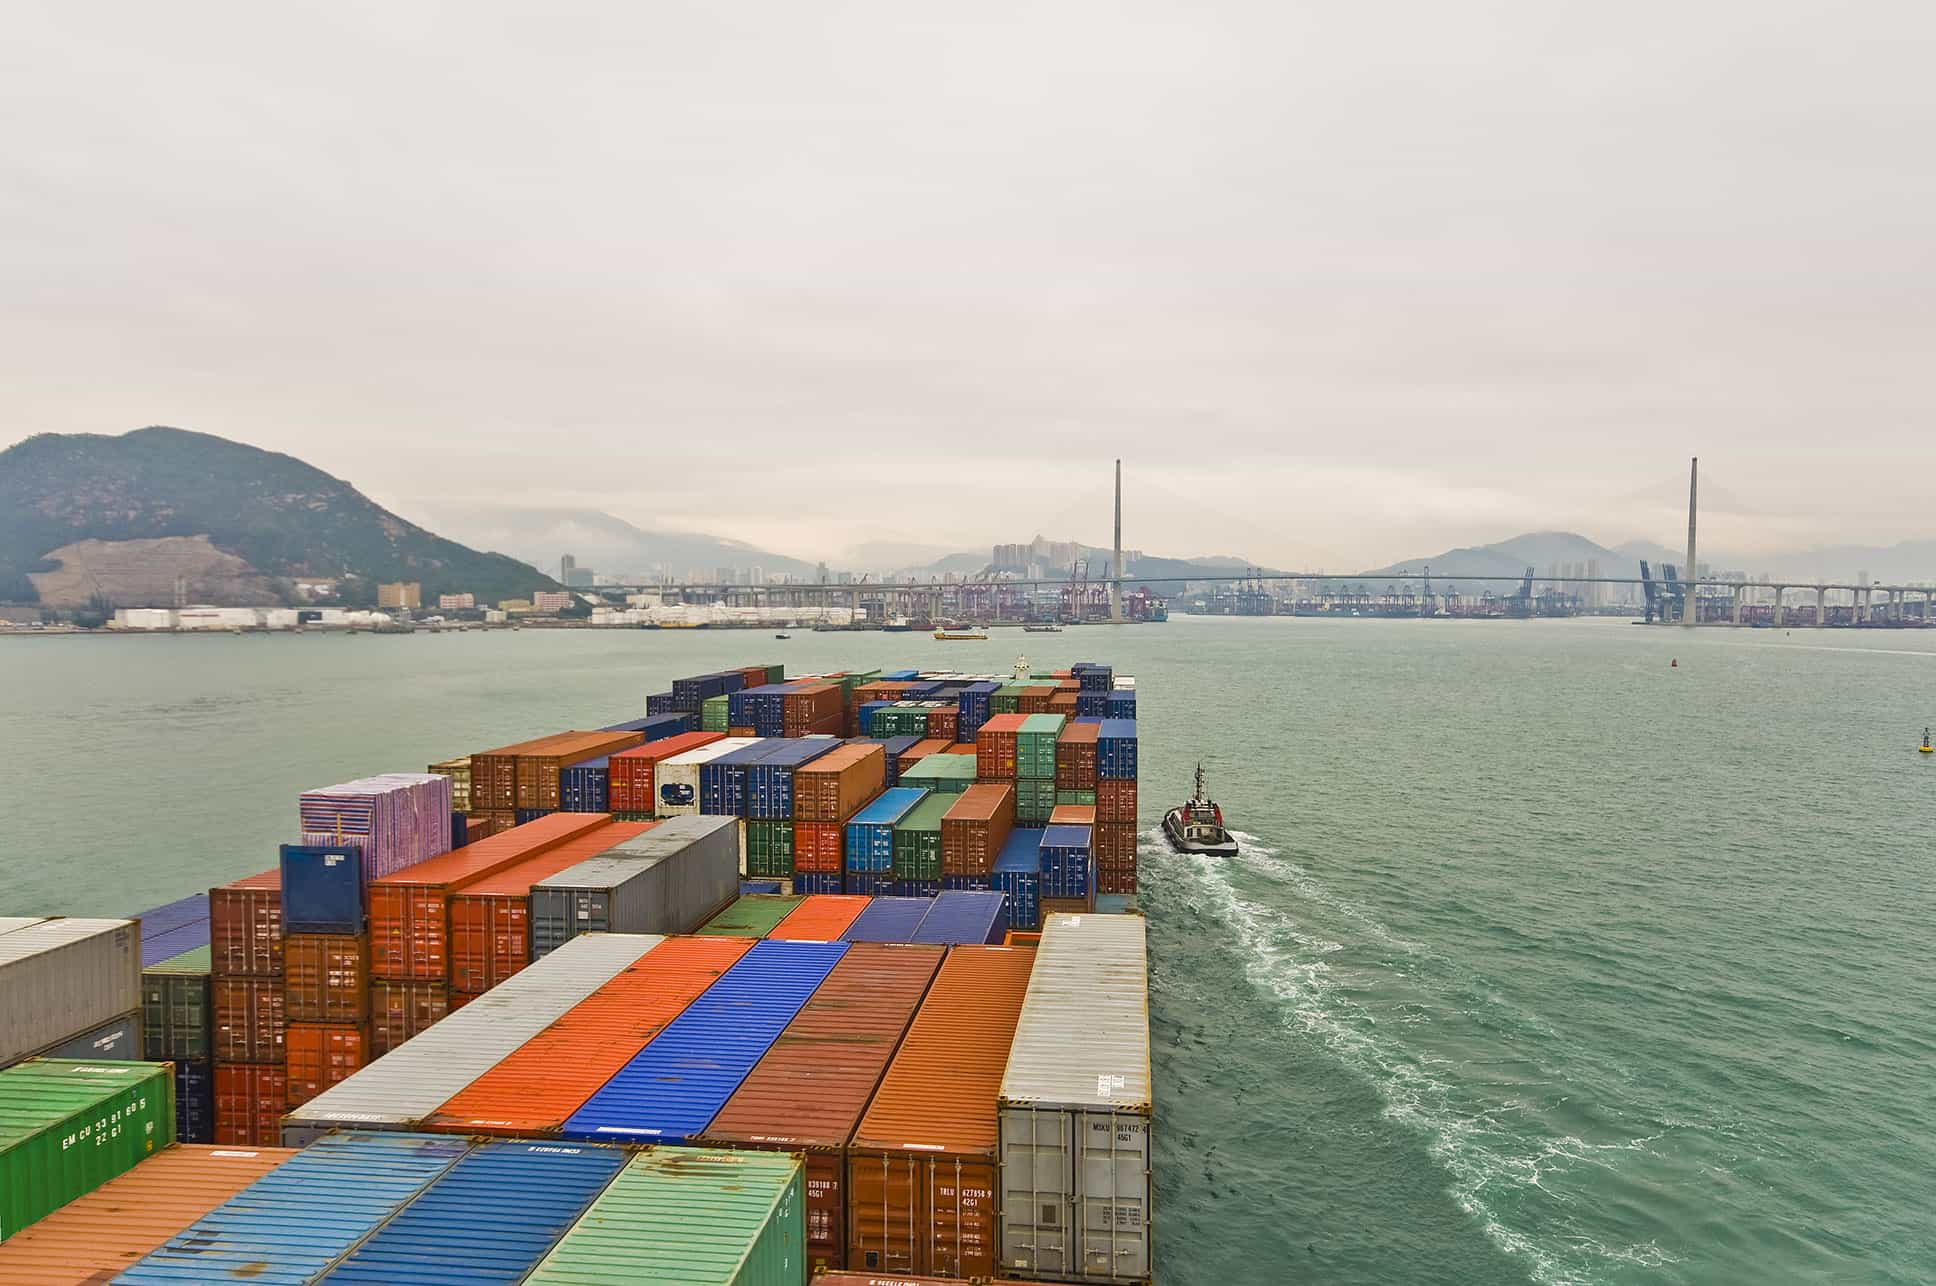 Things to consider before picking a shipping company